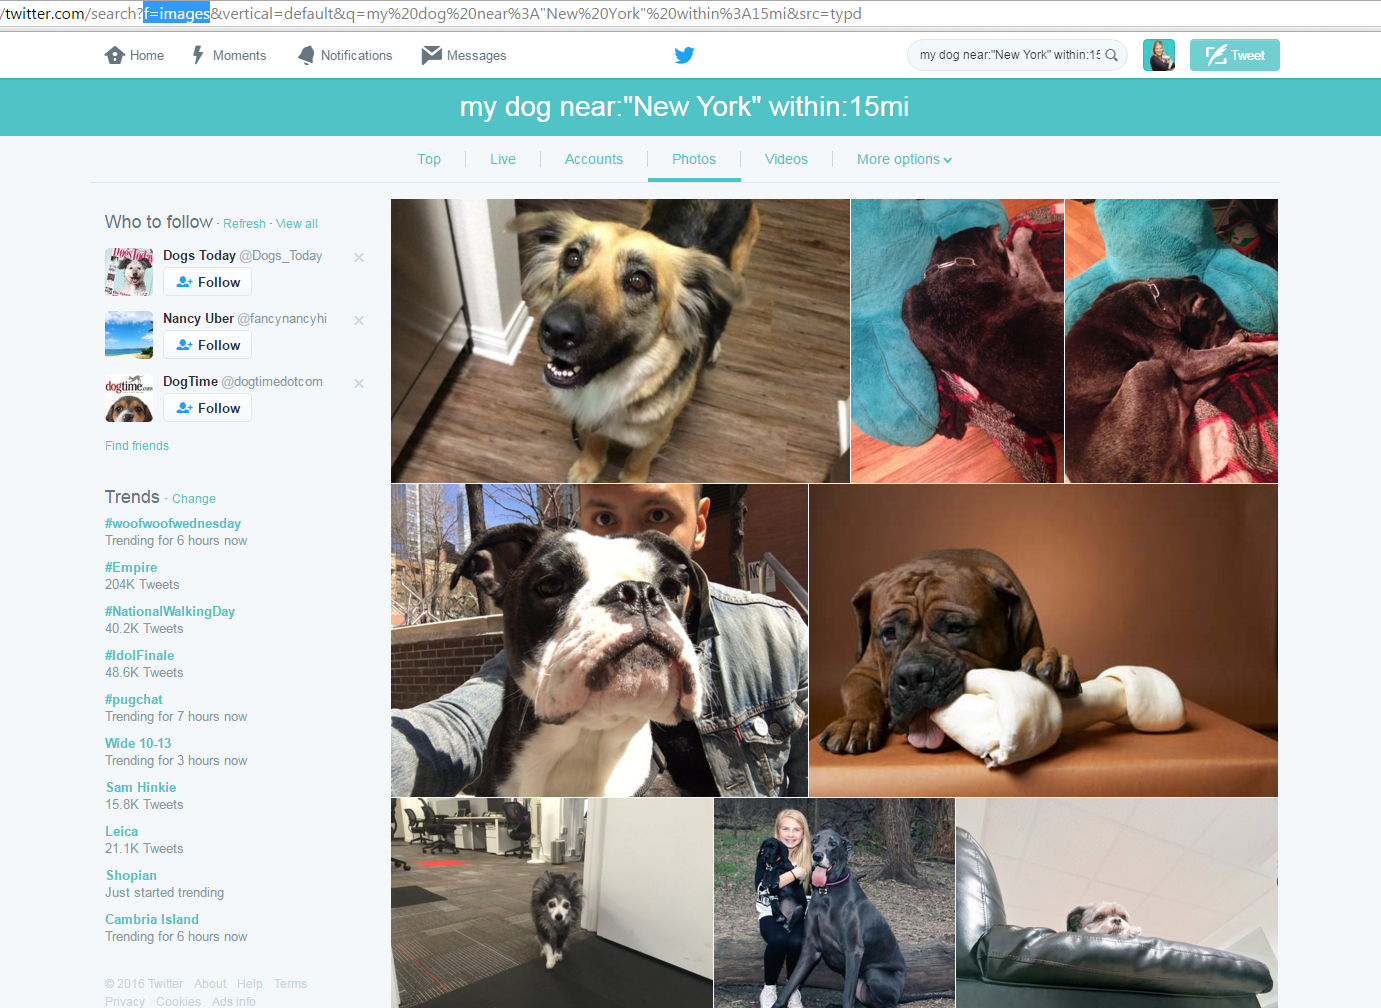 Tweets near NYC, containing 'my dog' and an image